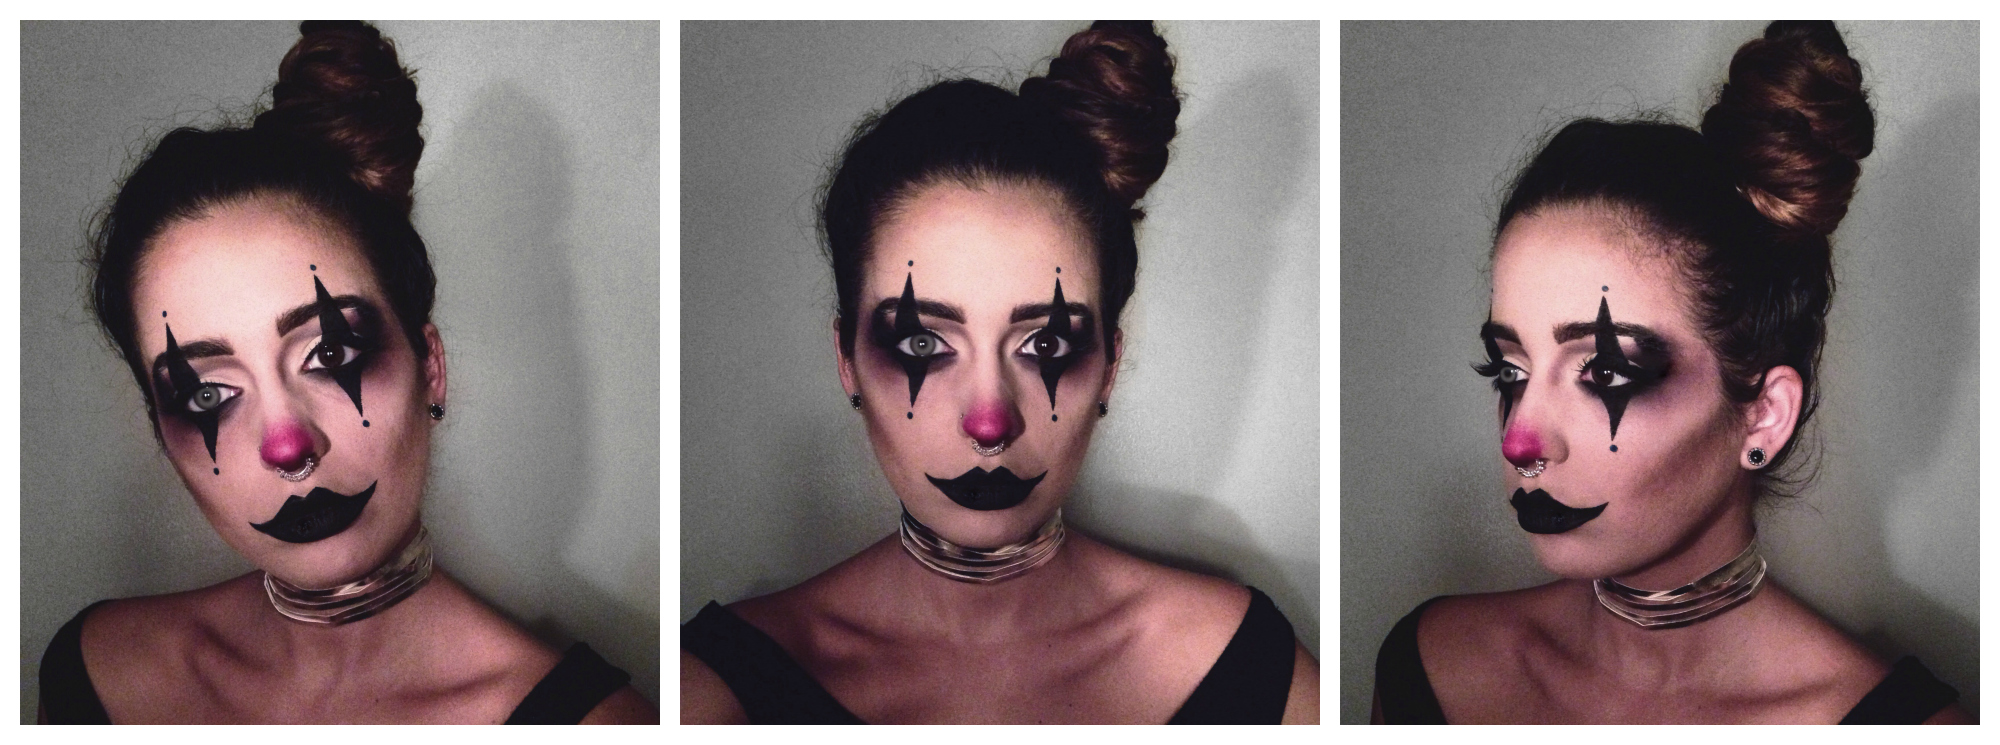 halloween-makeup-mua-grunge-gothic-clown-diy-costume-cosplay-collage.jpg